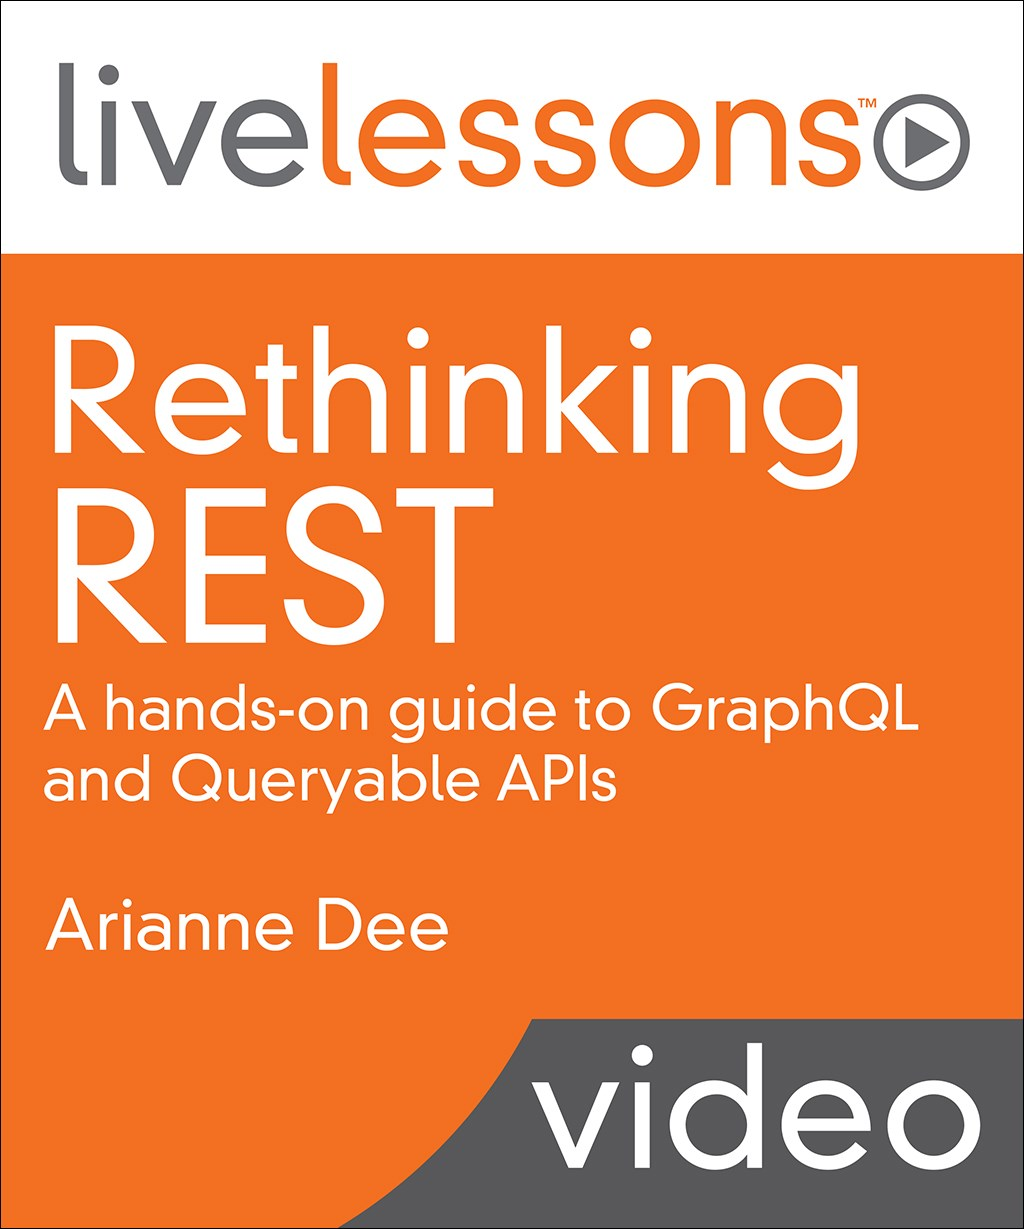 Rethinking REST: A hands-on guide to GraphQL and Queryable APIs